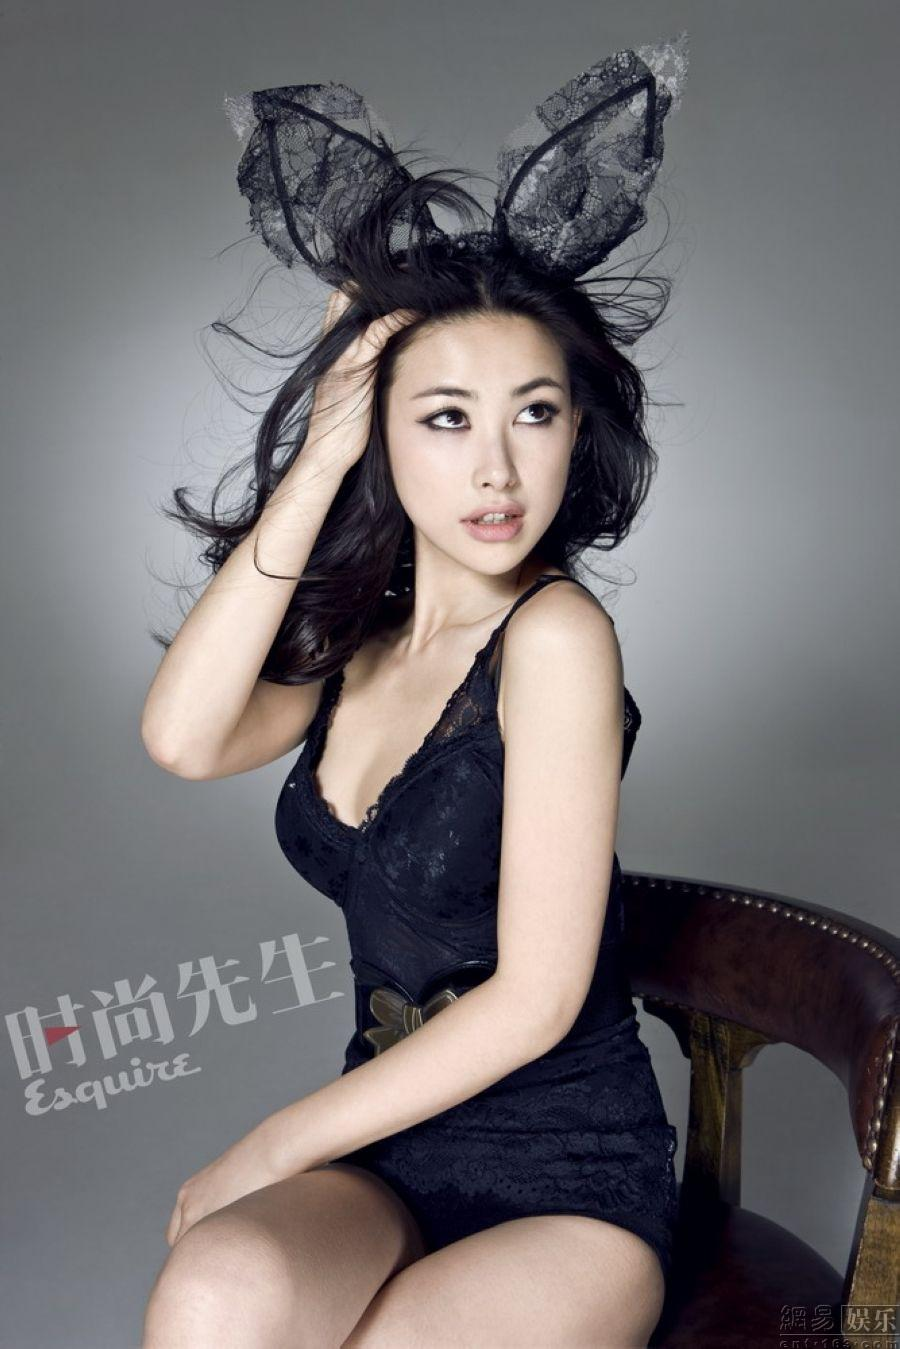 Chinese Attractive Actresses 2019, Beautiful & Hottest